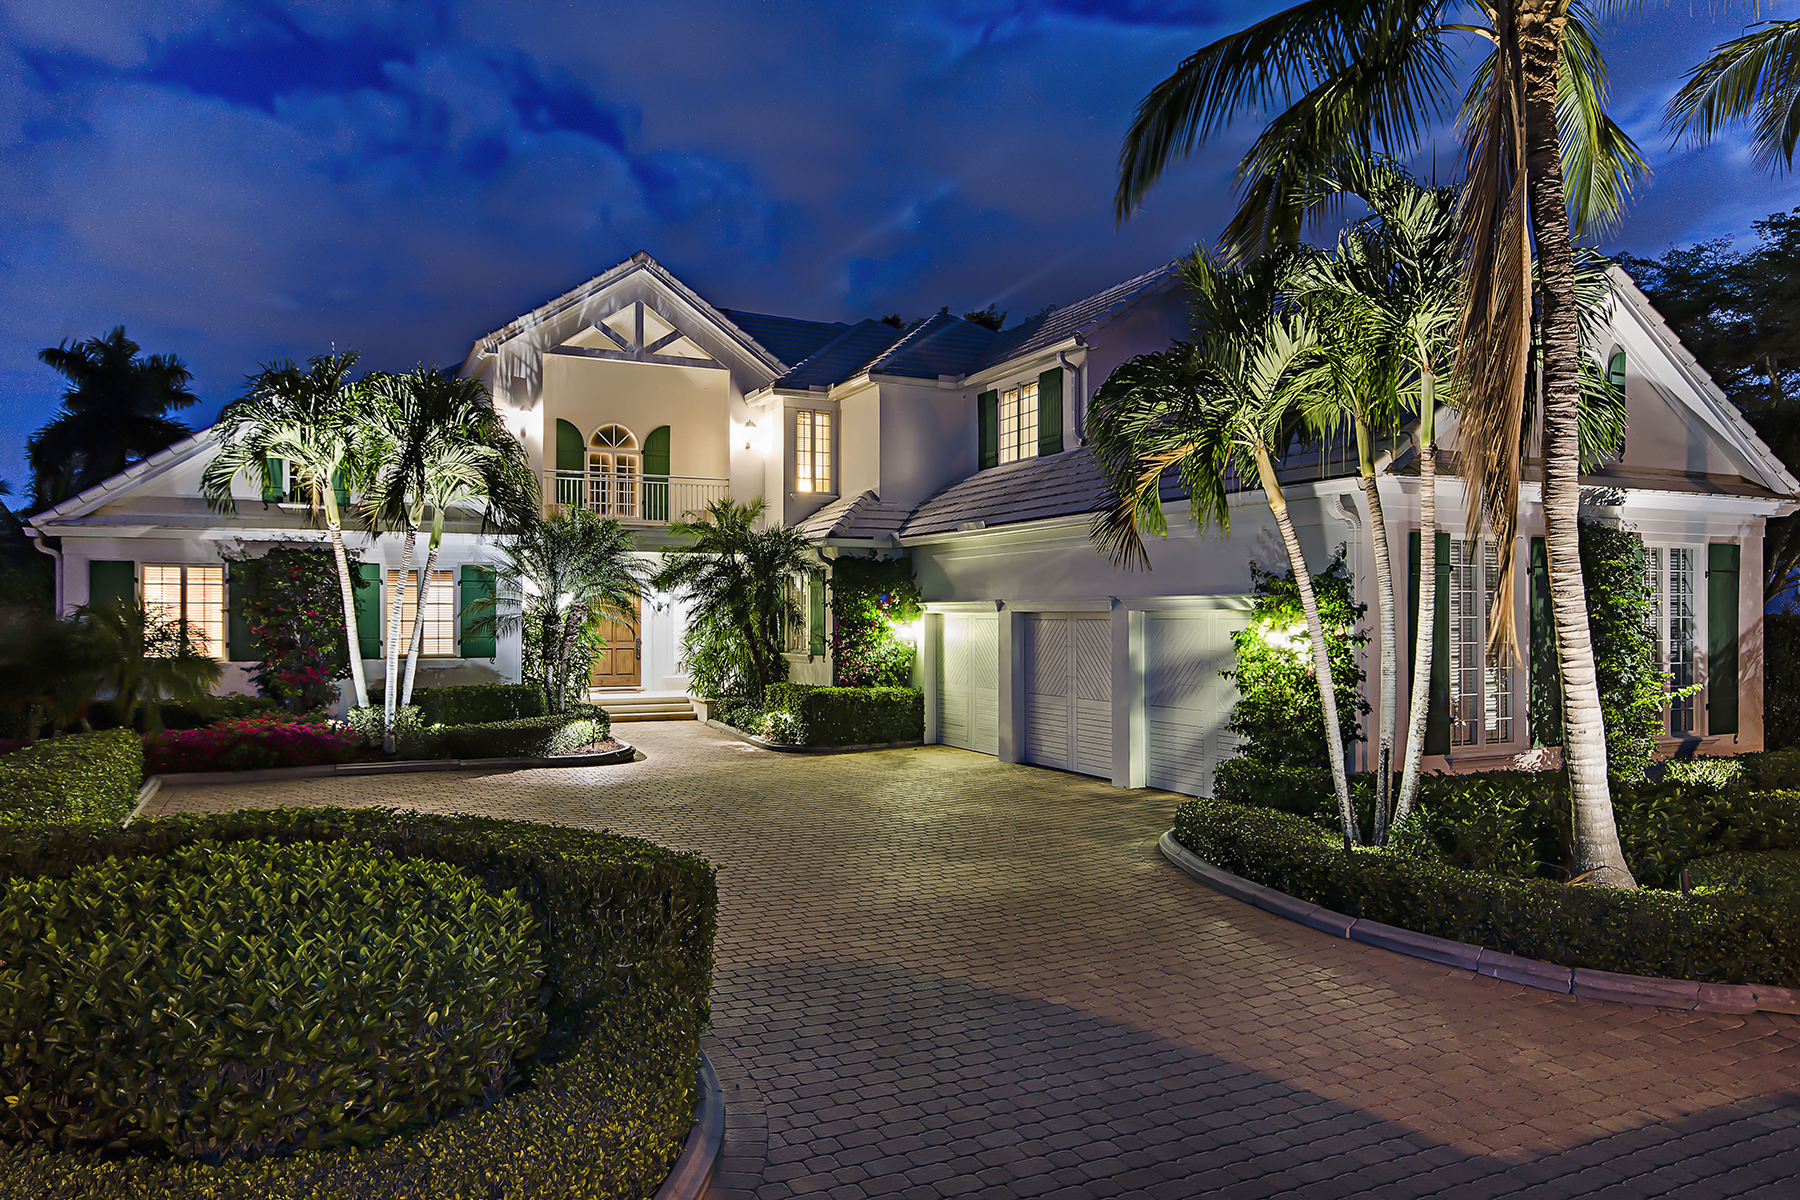 Single Family Home for Sale at PORT ROYAL 1099 Spyglass Ln Port Royal, Naples, Florida, 34102 United States